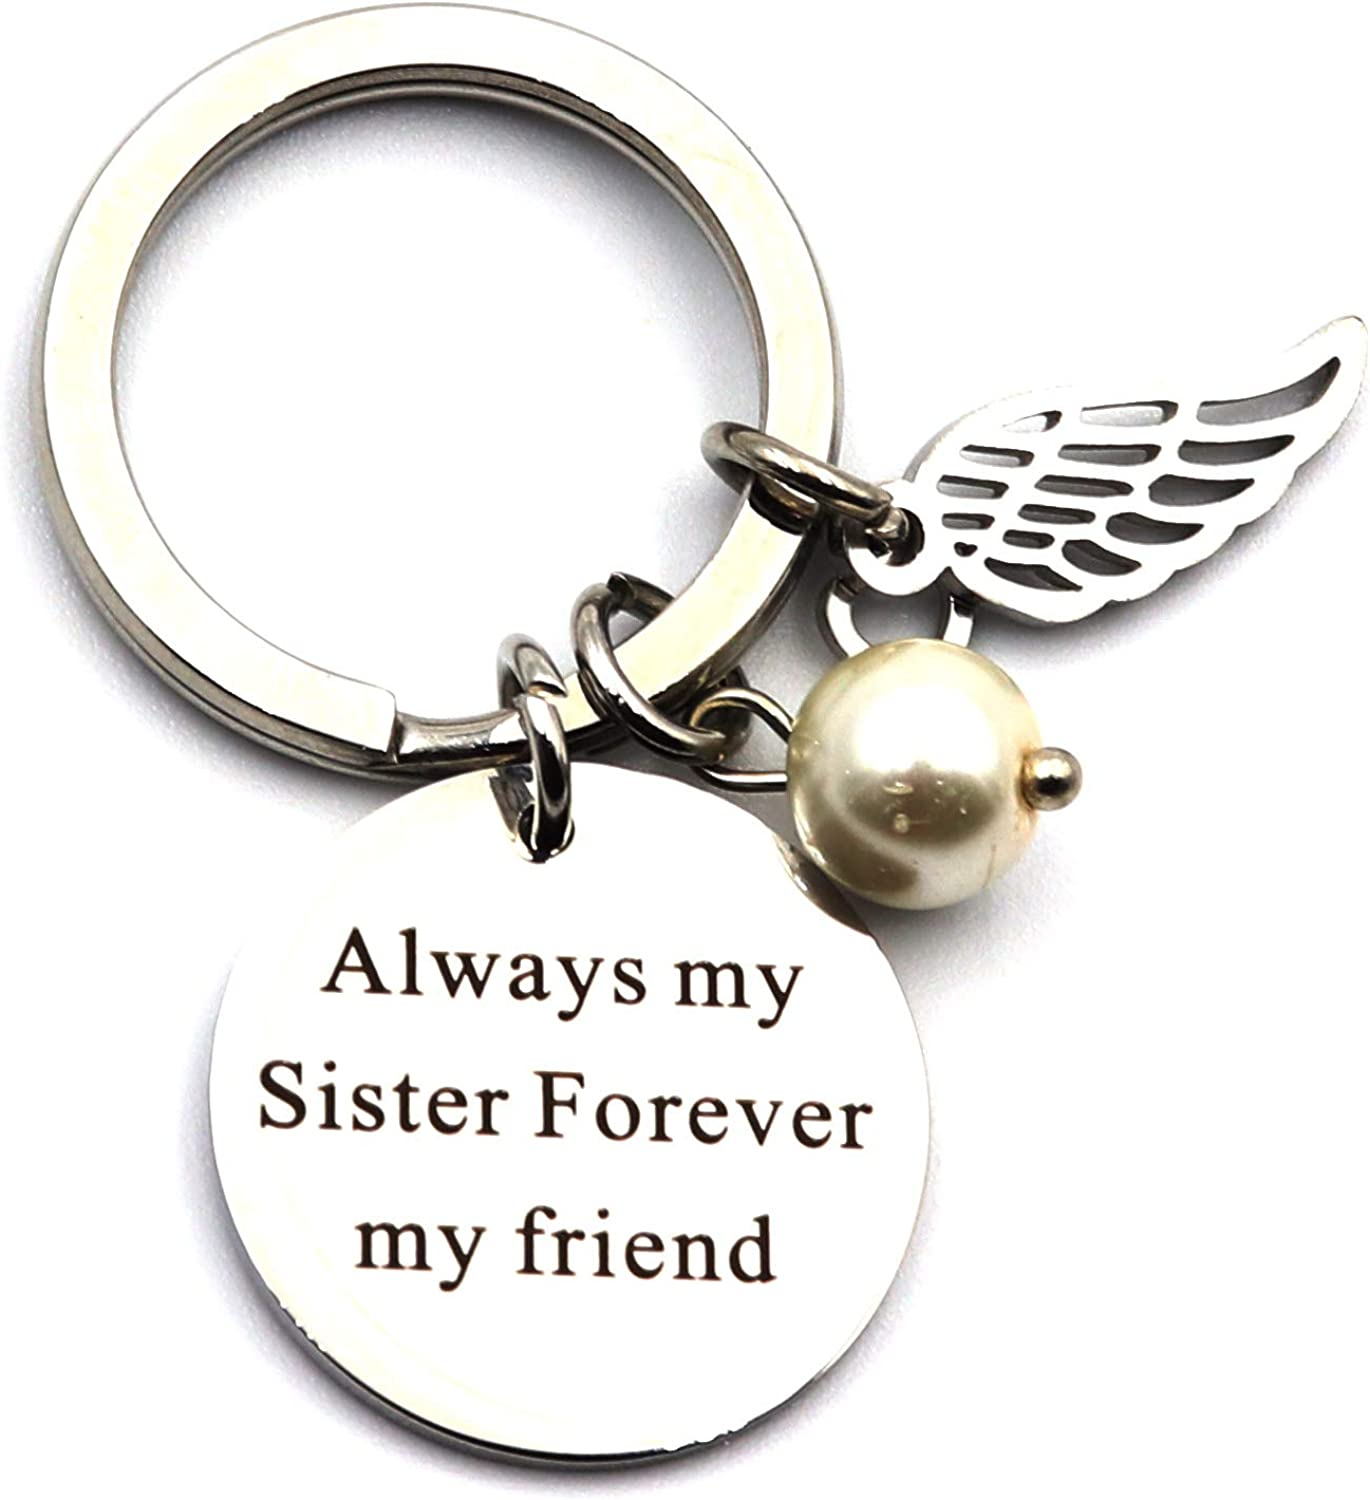 DETUCK Keychain To Sister Stainless Steel Key Chain Keyring Gift To Best Friends | Always My Sister Forever My Friend